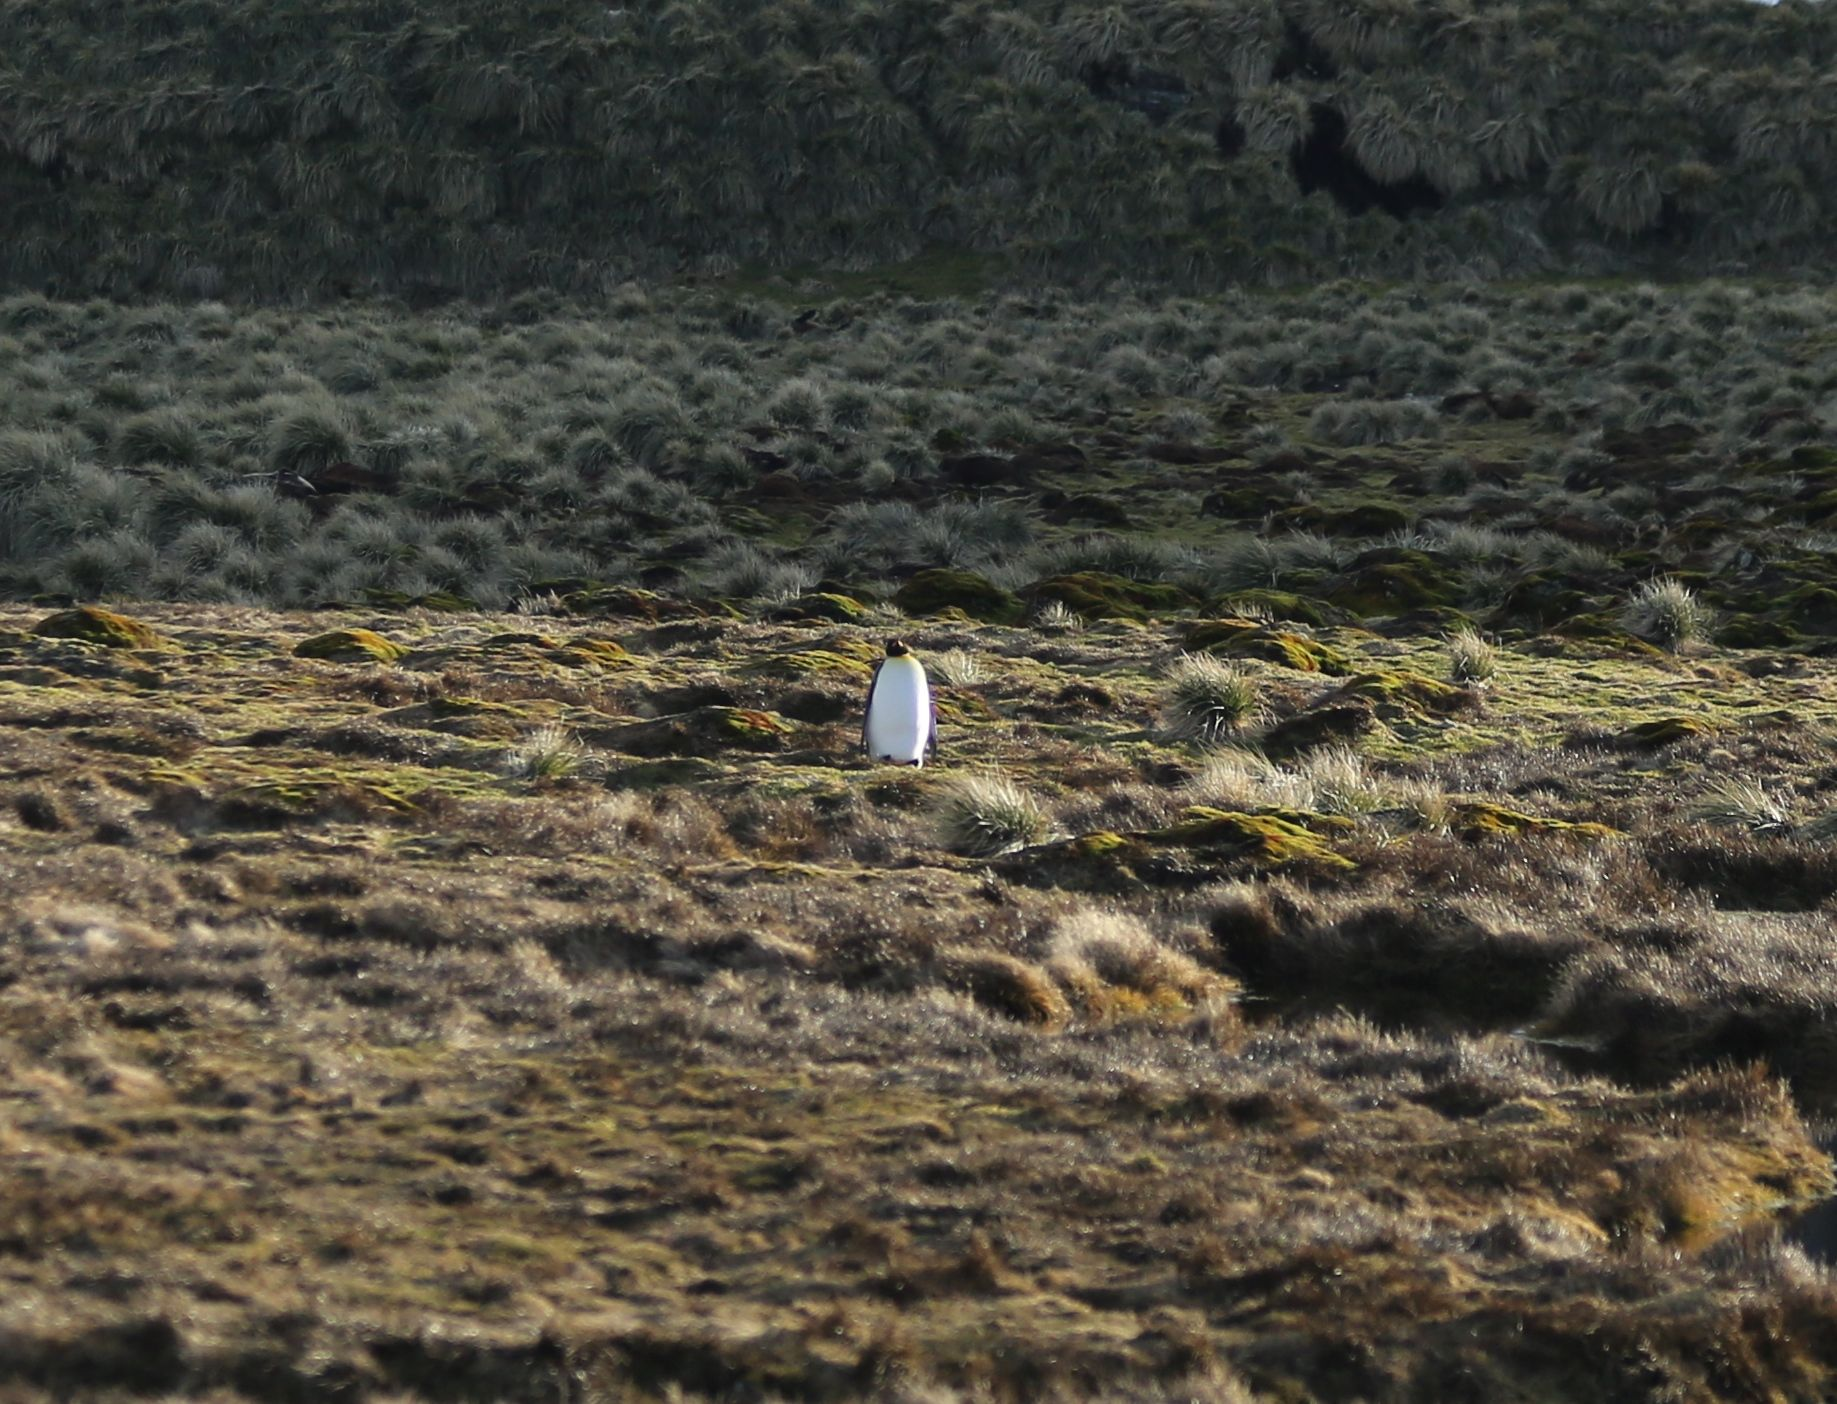 After the hundreds of thousands of king penguins we had seen earlier on South Georgia, this lone one seemed dramatic in a different way.